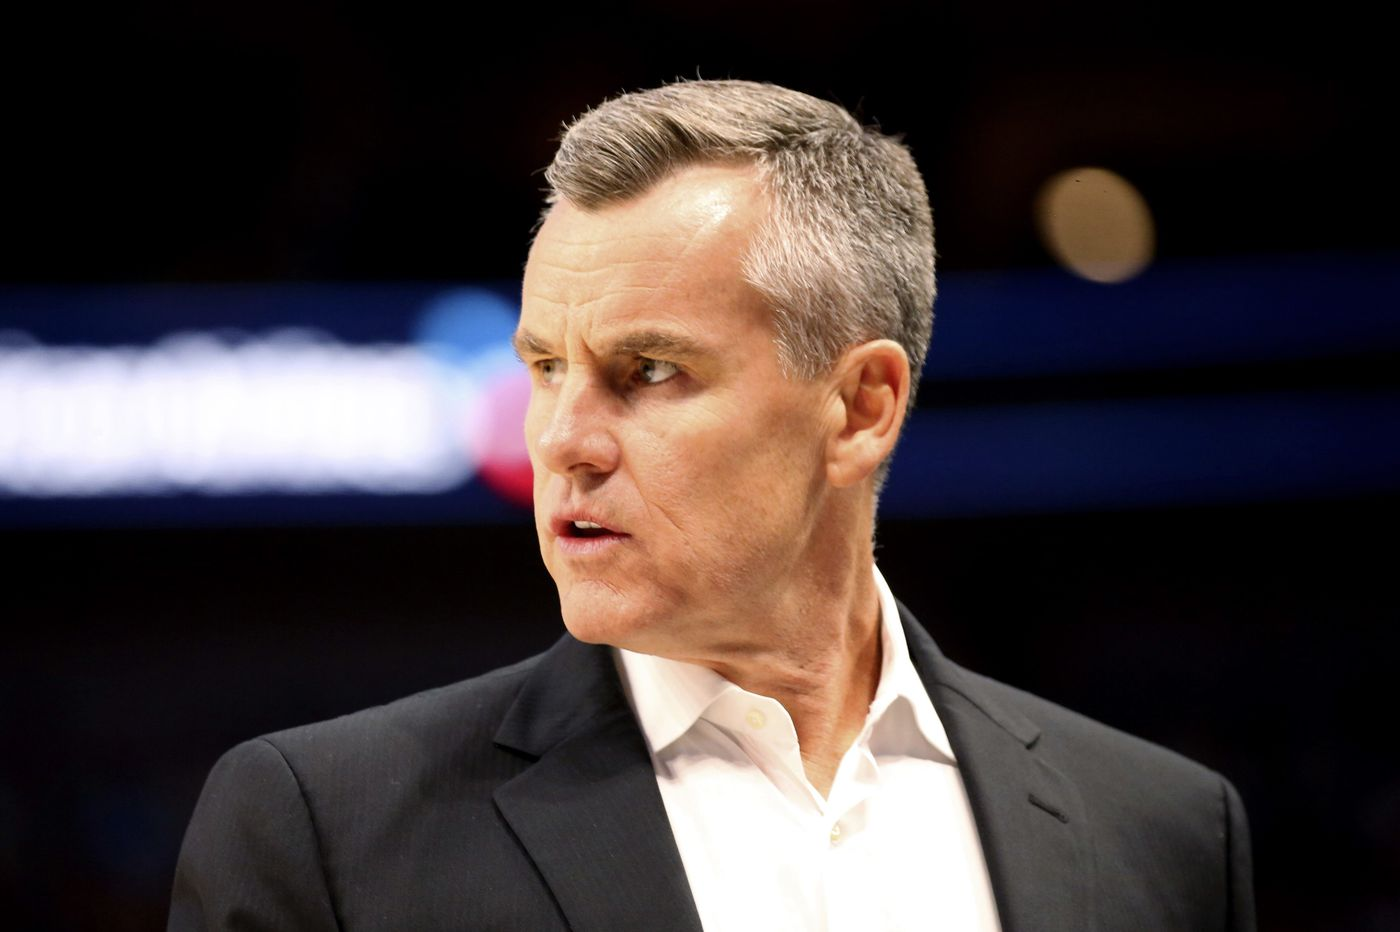 Sixers coaching candidate Billy Donovan takes Chicago Bulls vacant job